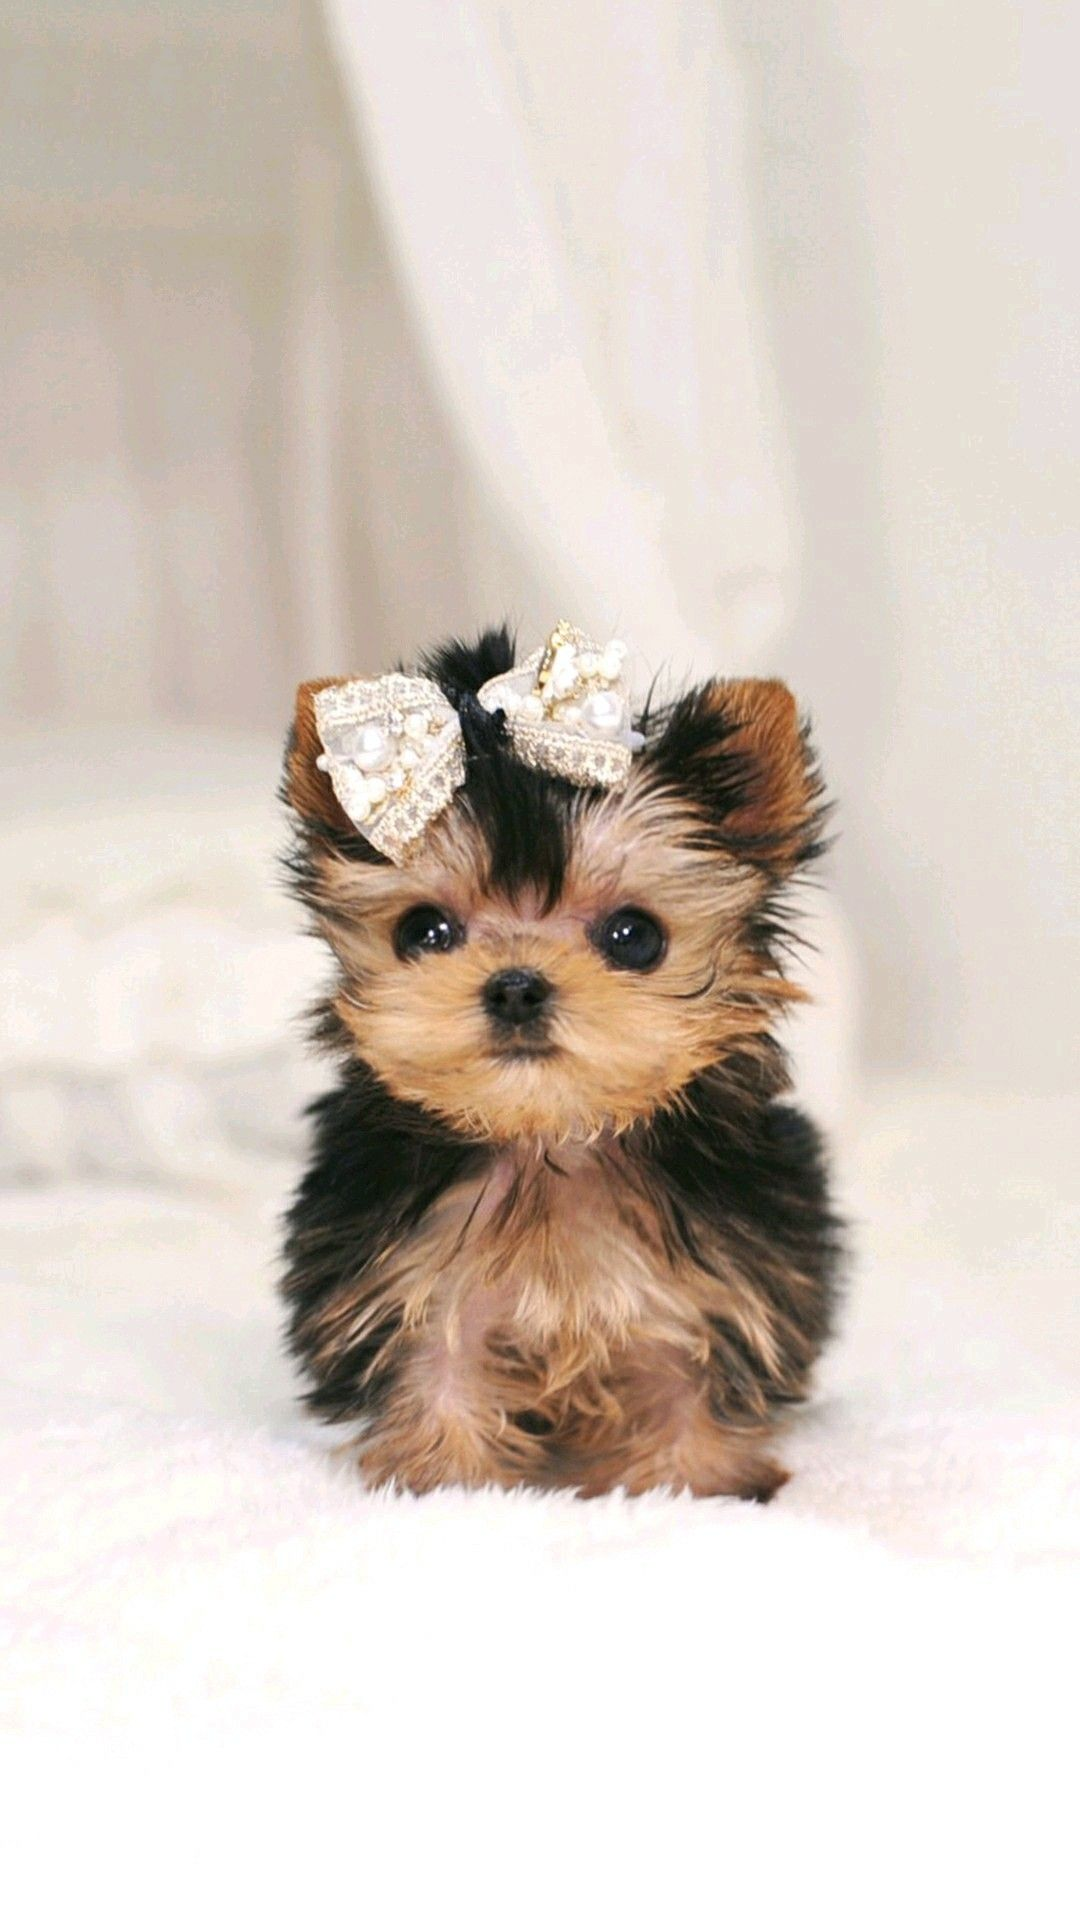 Adorable puppy Cute dogs breeds, Cute puppy wallpaper